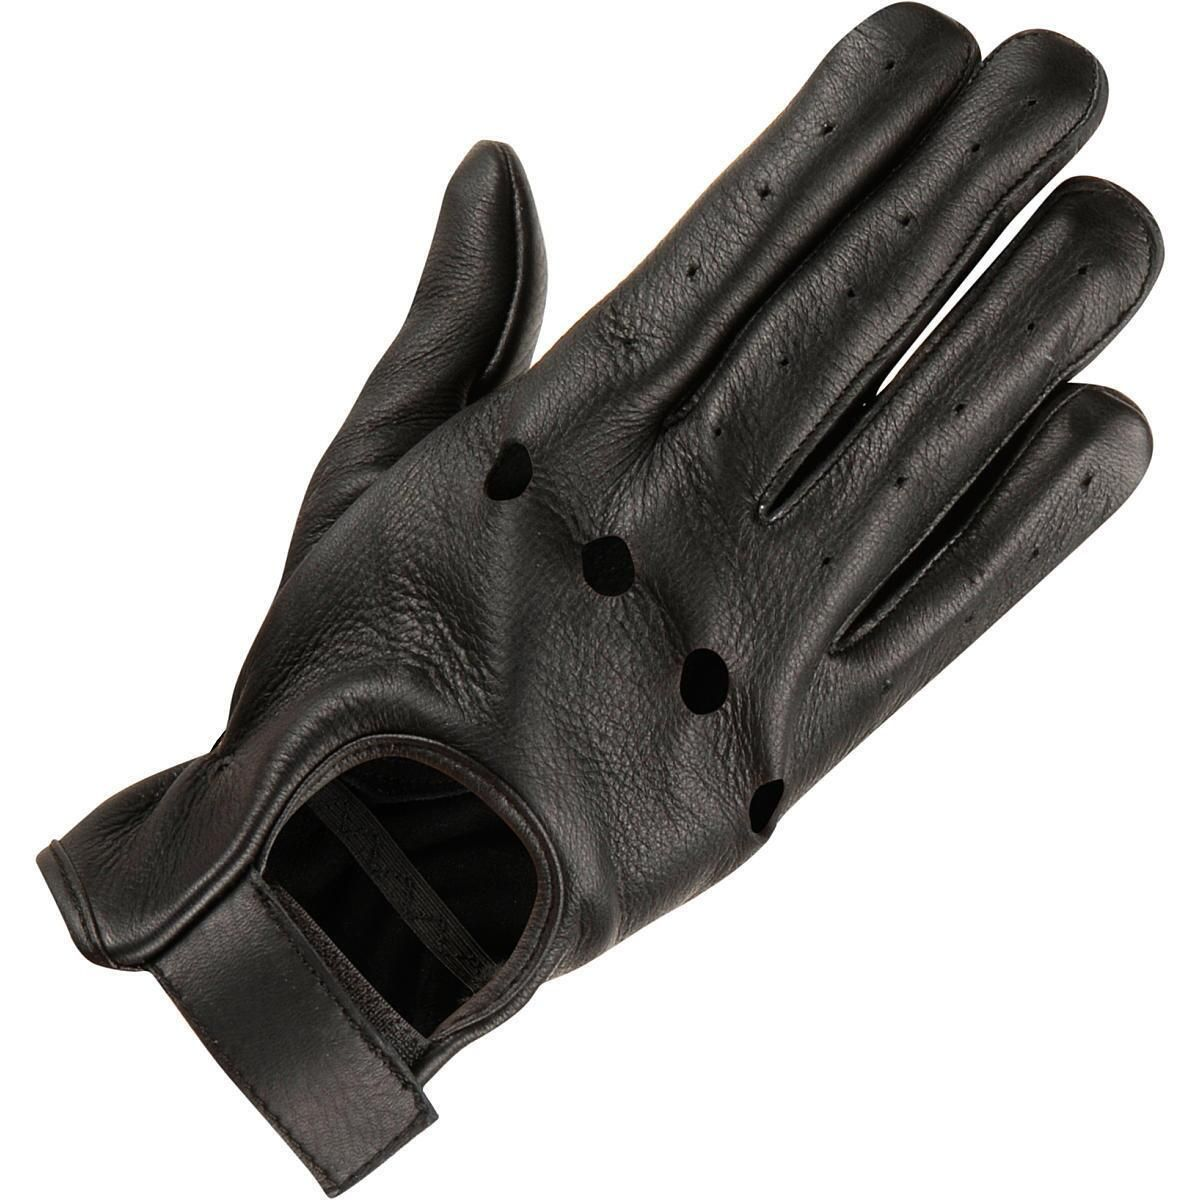 Mens leather driving gloves australia - Driving Gloves Knuckle Holes Men S Leather Driving Glove W Knuckle Holes